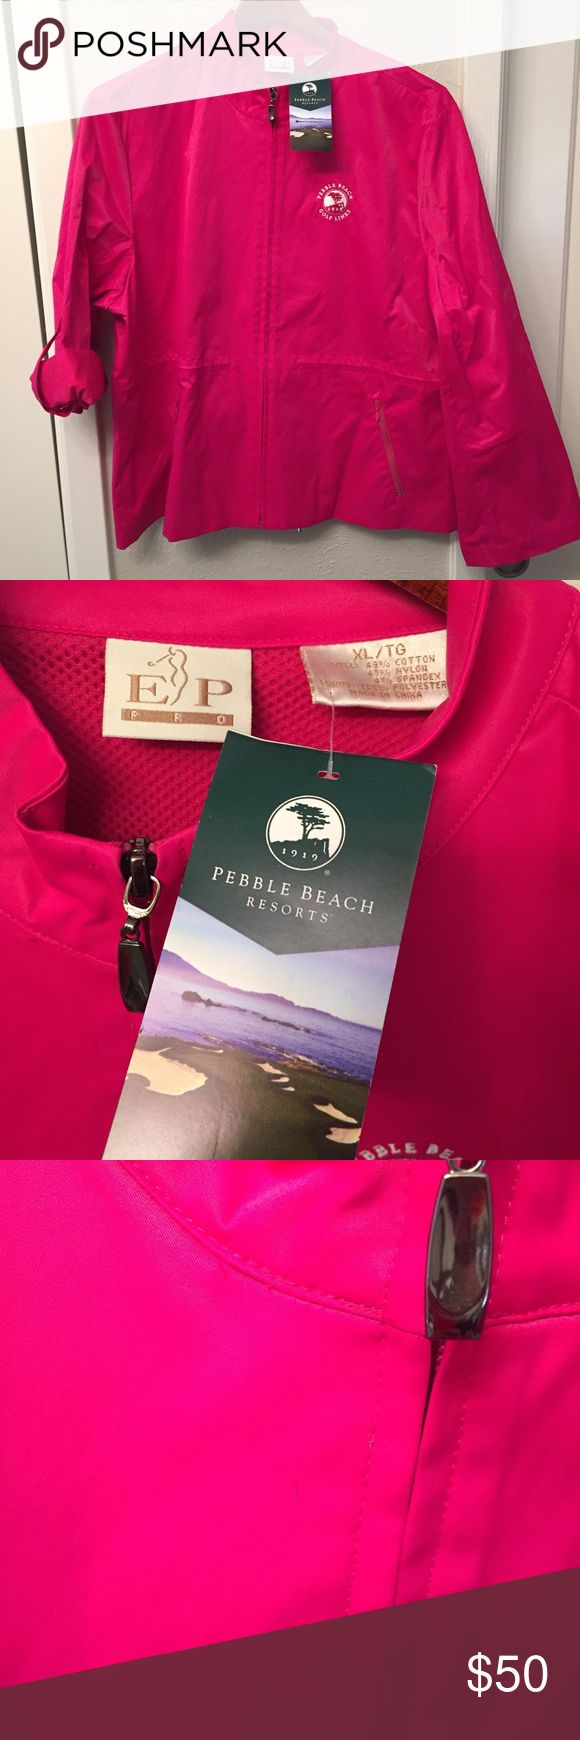 "EP Golf Jacket Sz XL NWT Pink Azalea Pebble Beach New and buttery soft satiny smooth finish! There is the tiniest mark on the front near the zipper (reference photos). Chest: 47""; Sleeve from shoulder: 23.5""; Length from collar/neck seam down center of back: 25"" EP Pro Jackets & Coats"